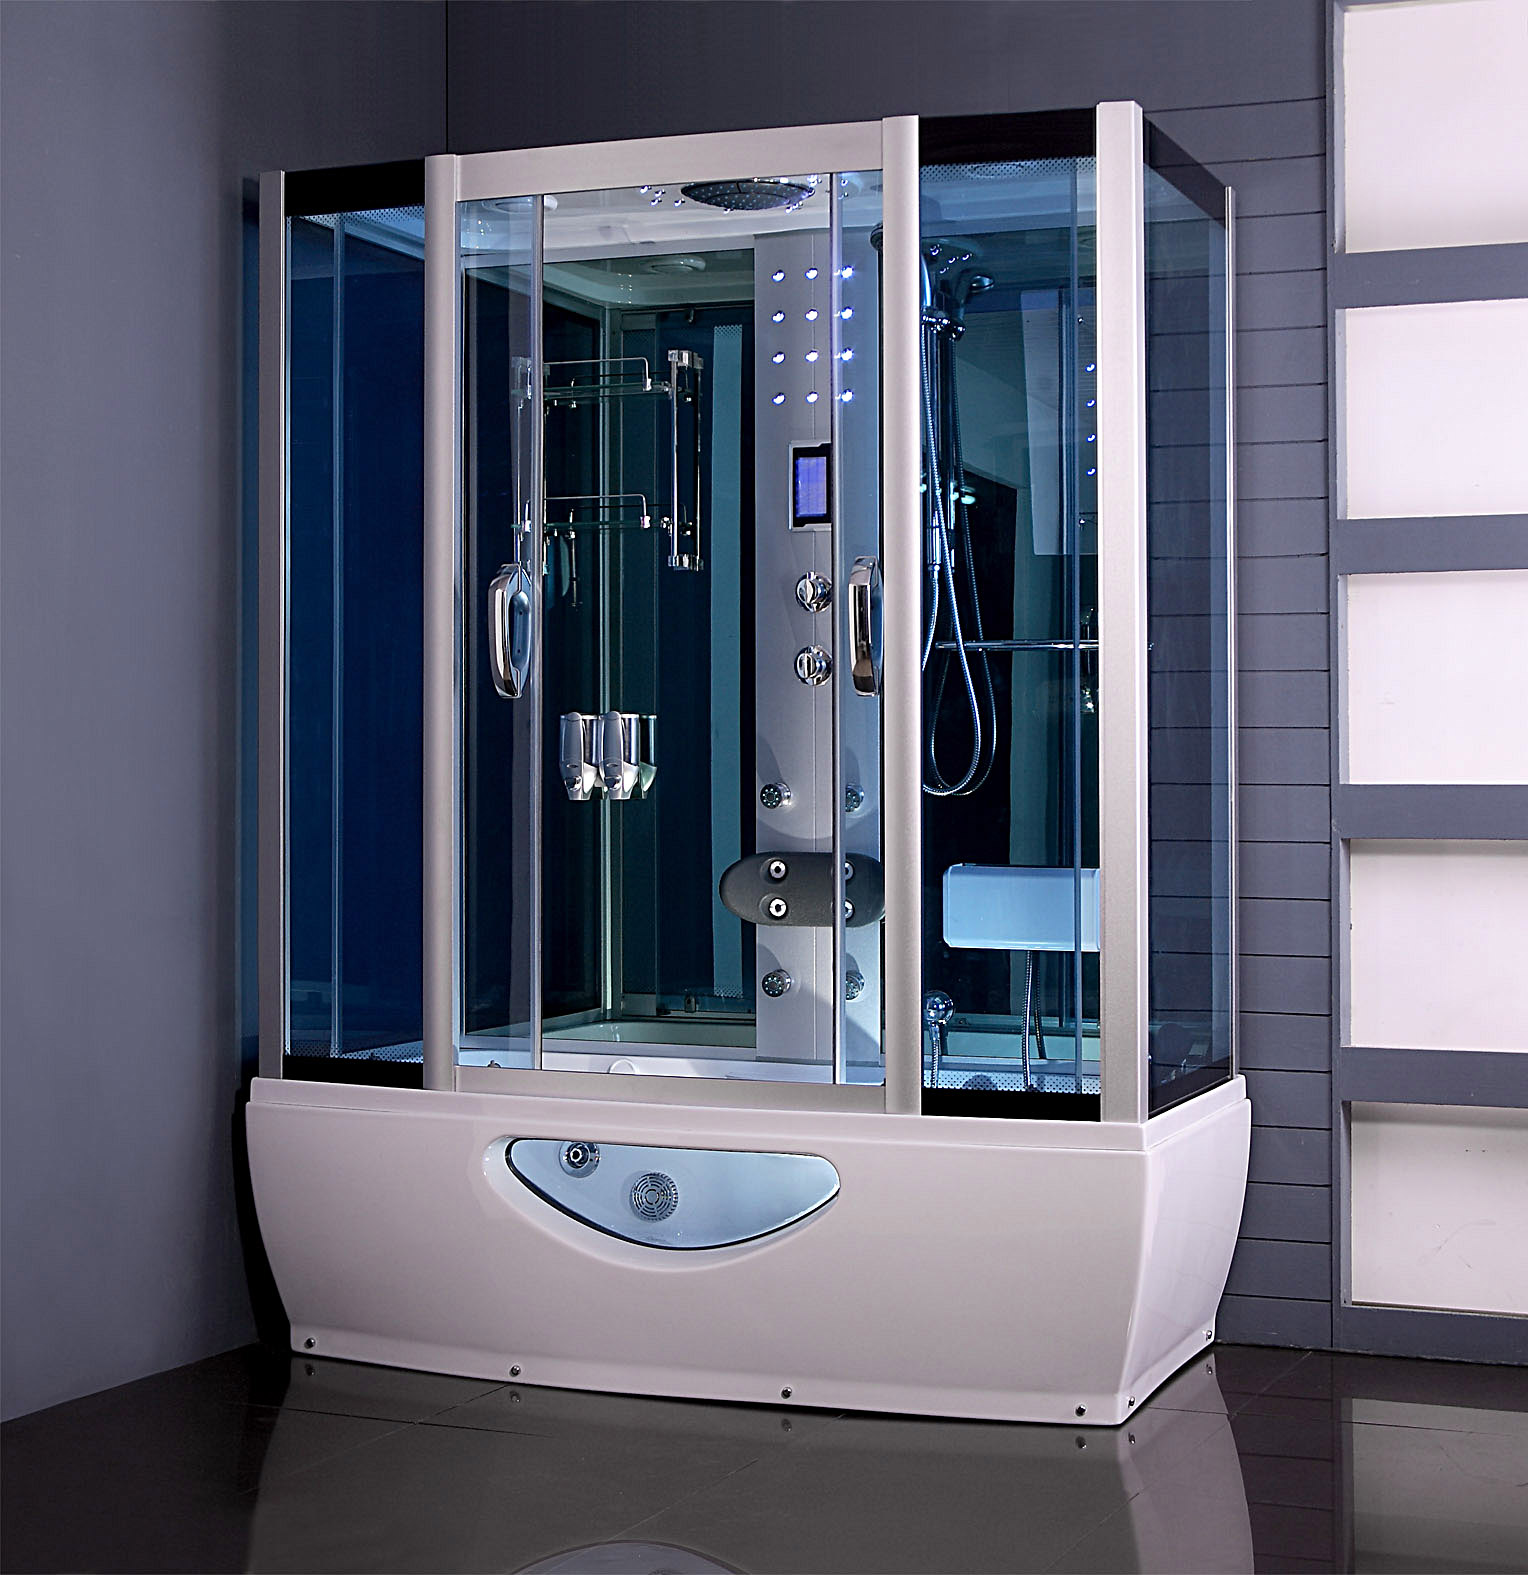 SteamShowers: Know about Steam Showers and Disabled Bathrooms